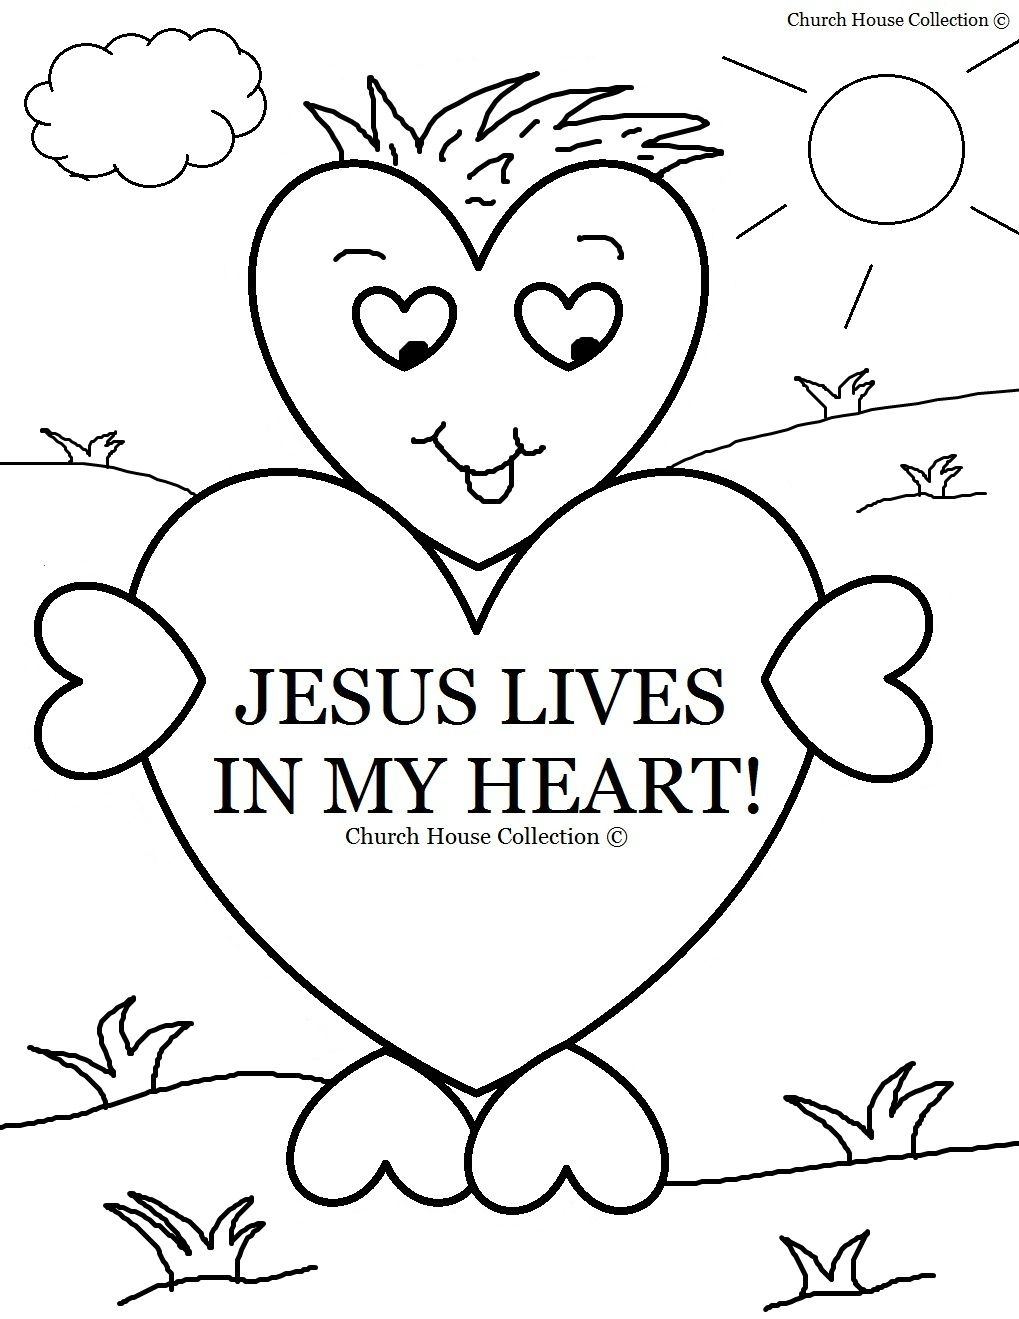 Free bible story coloring pages for kids - Colossians 3 23 Bible Verse Coloring Sheet For Sunday School New Crafts On Danielle S Place Of Crafts And Activities Pinterest Sunday School